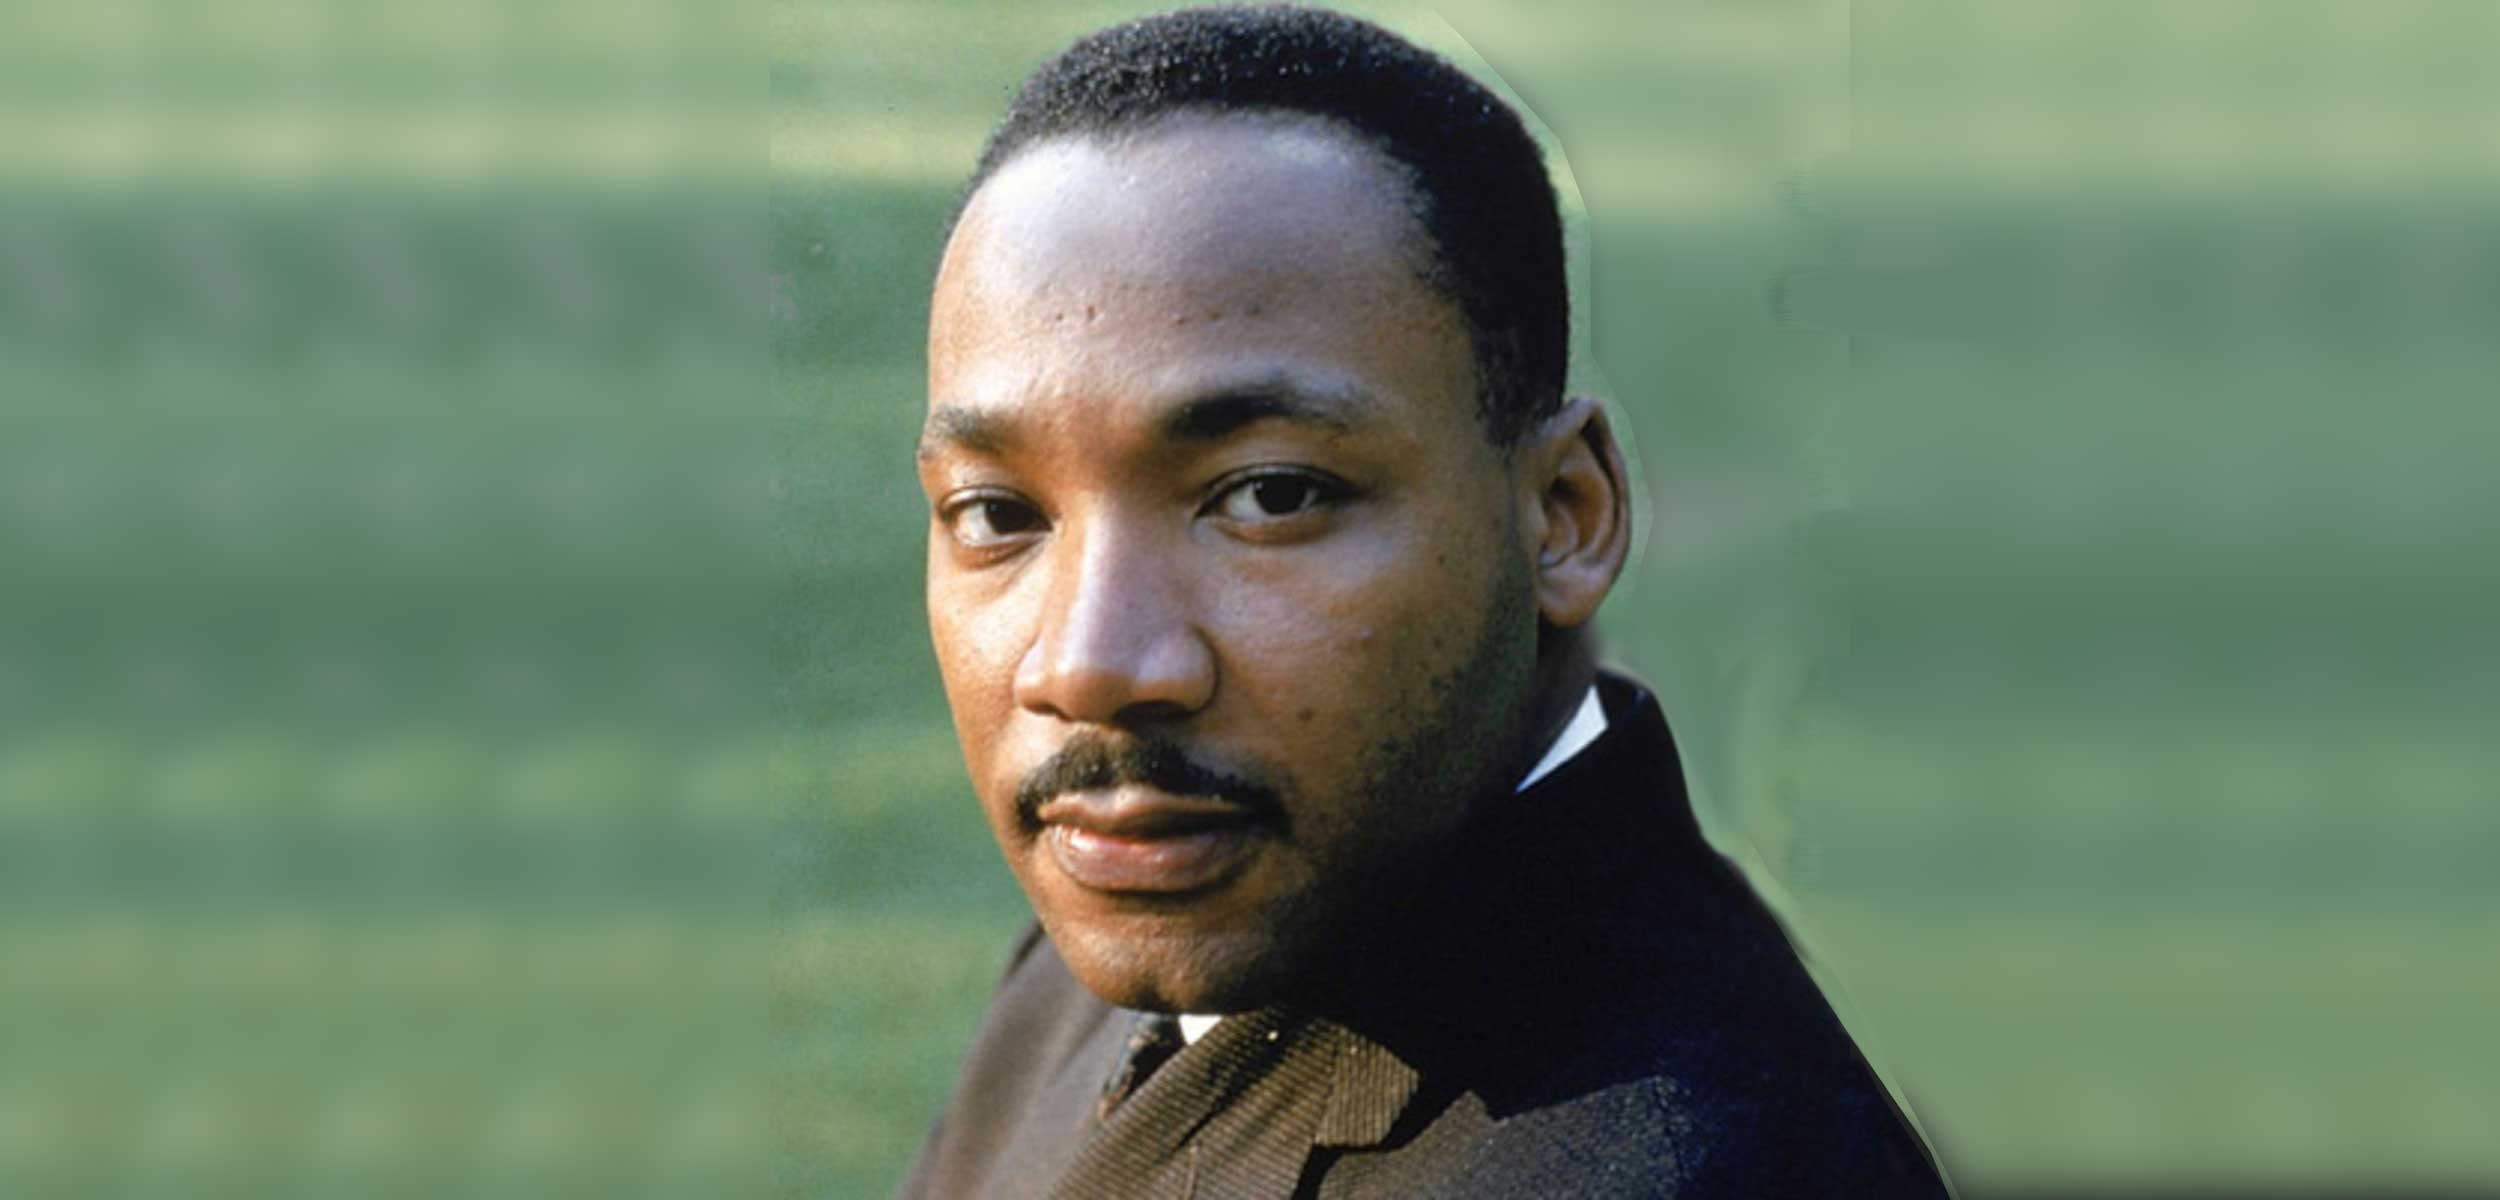 thesis martin luther king jr Authorship issues concerning martin luther king jr center on claims of martin luther king jr having committed plagiarism these issues fall into two general.